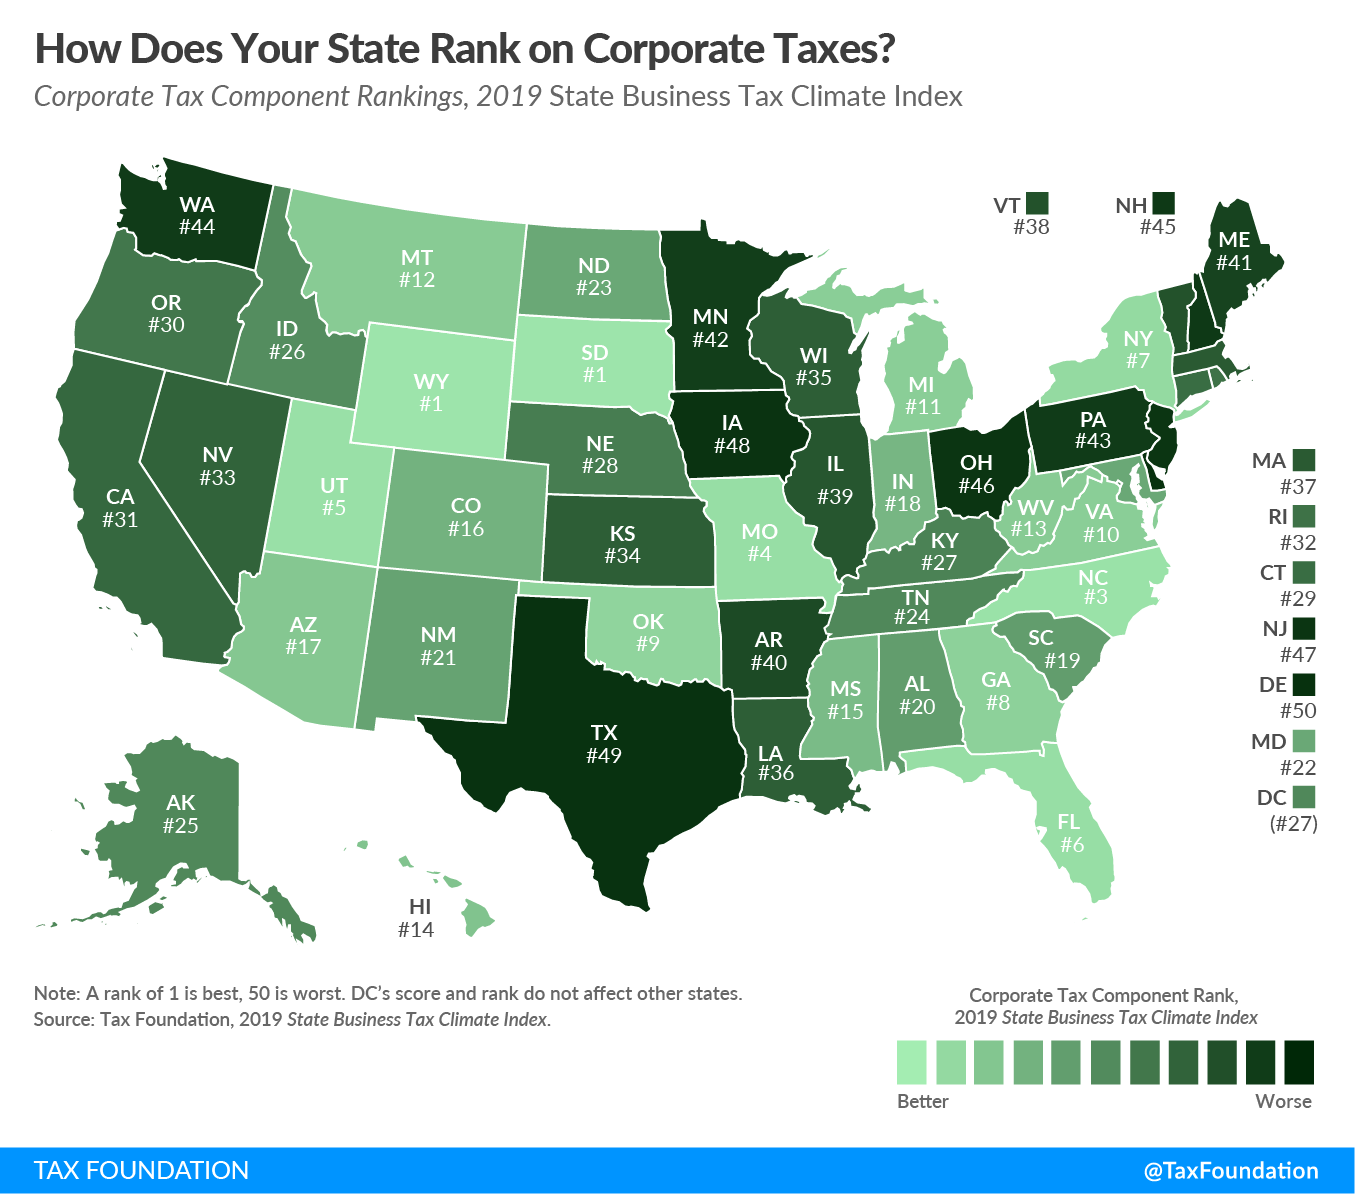 Corporate Income Tax Rankings on the 2019 State Business Tax Climate Index